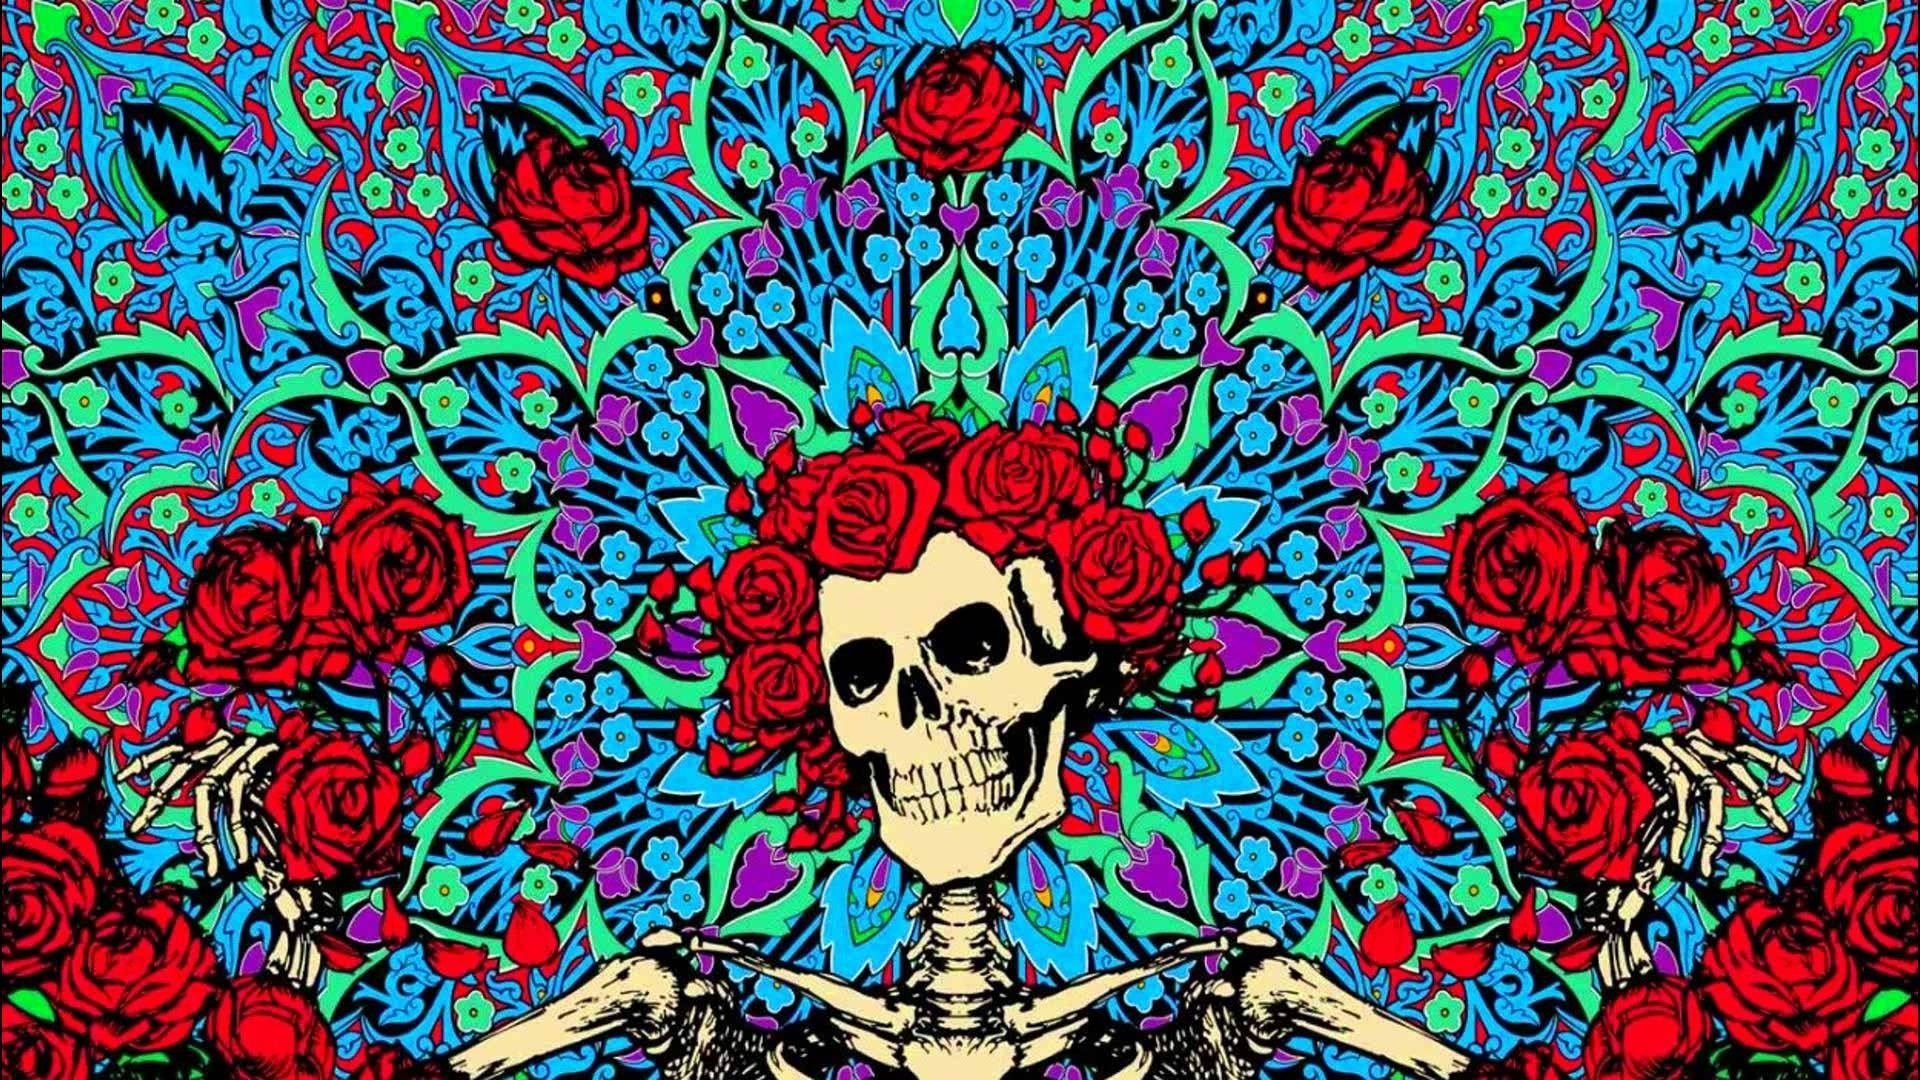 grateful dead wallpaper ·① download free amazing wallpapers for